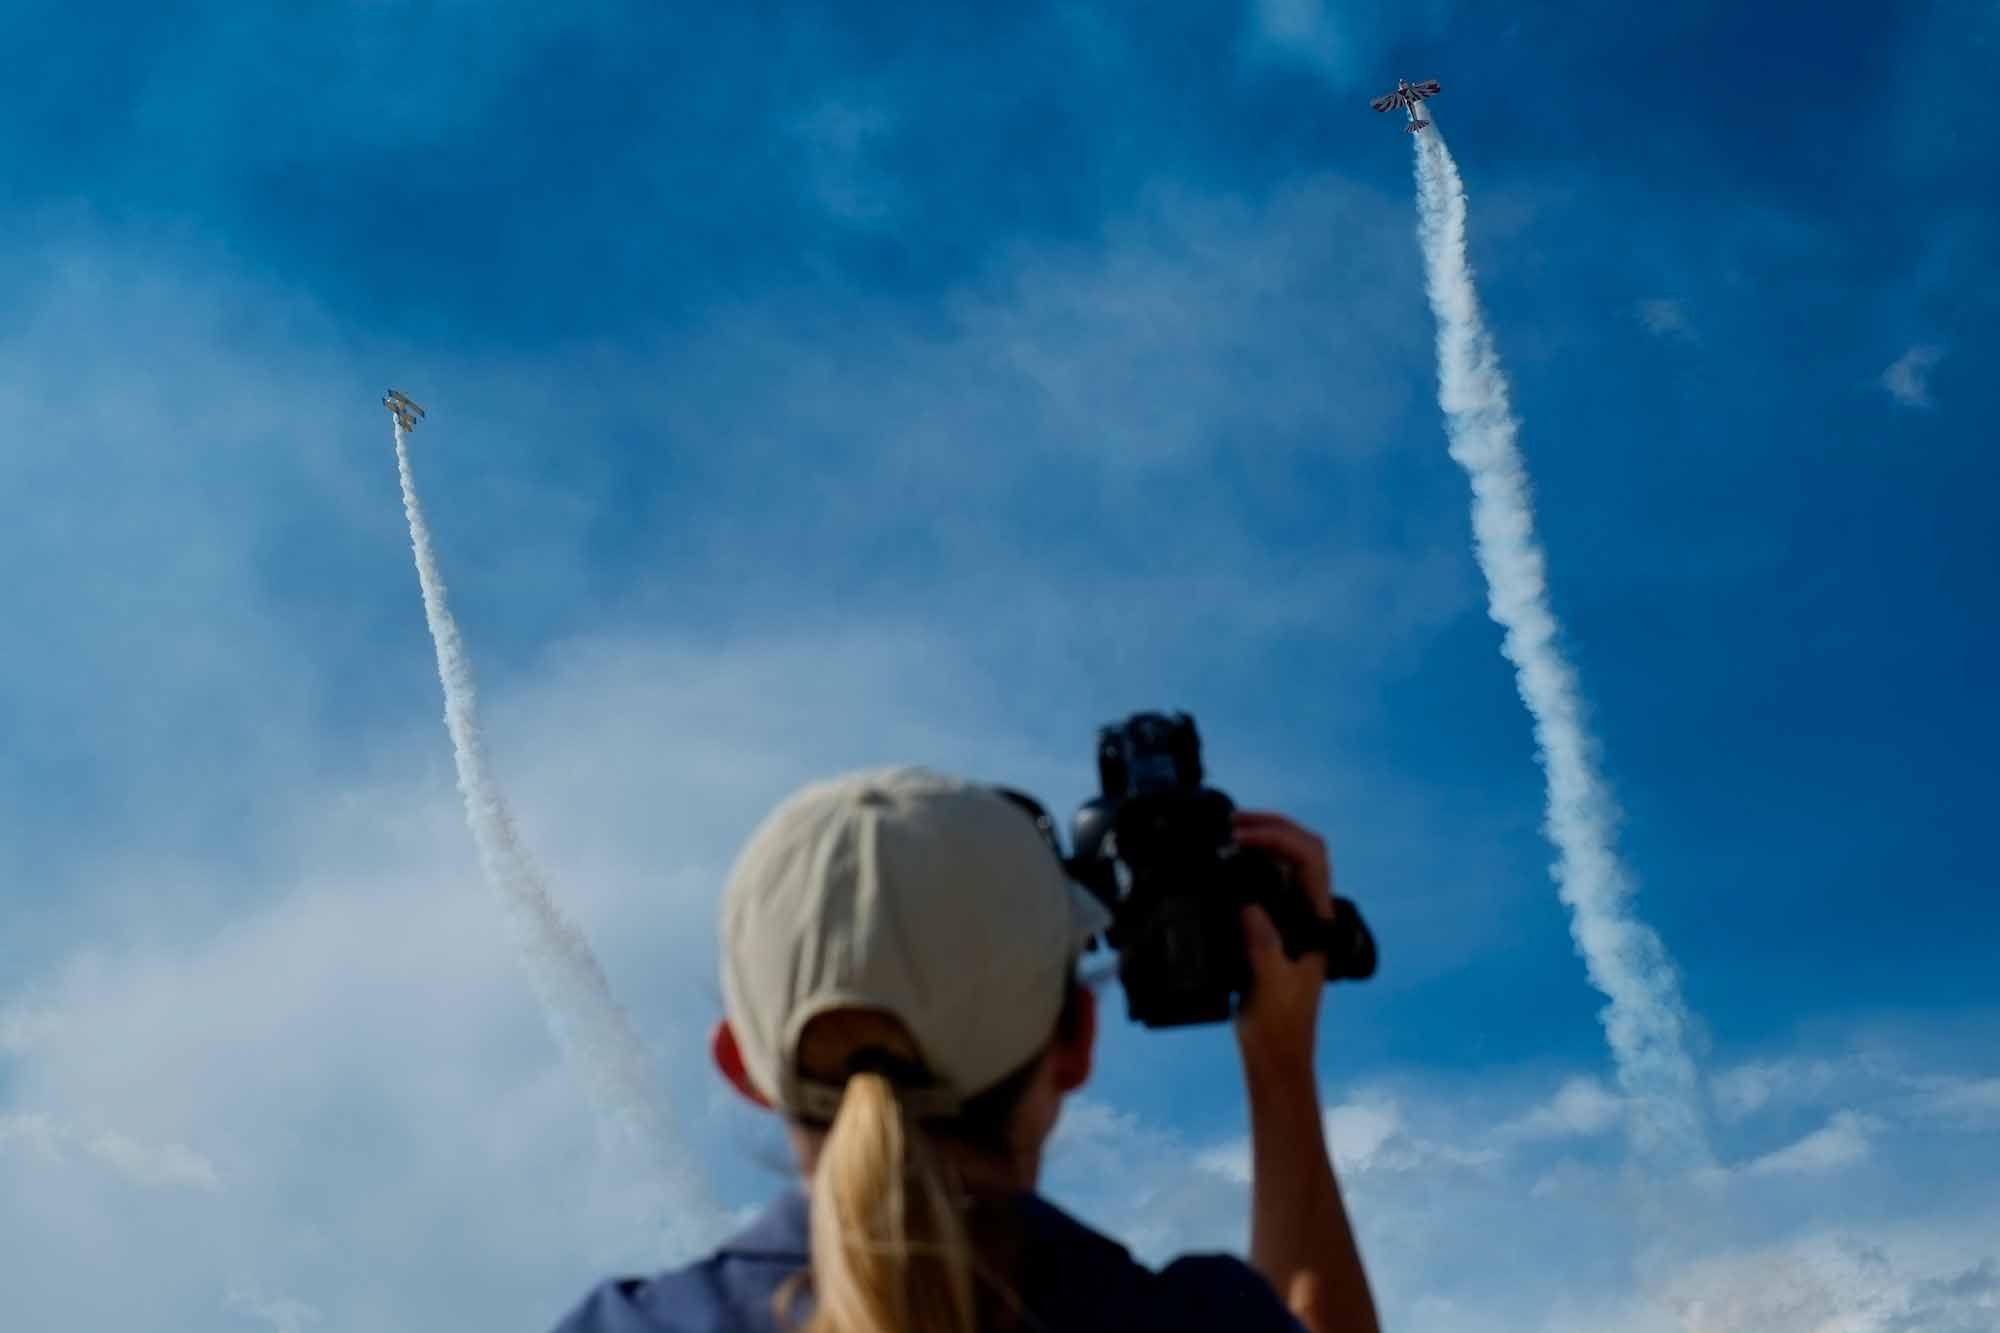 An onlooker videotapes stunt pilots flying during the Wheels and Wings airshow in Eagle, Colo. on Saturday, Sept. 26, 2014.